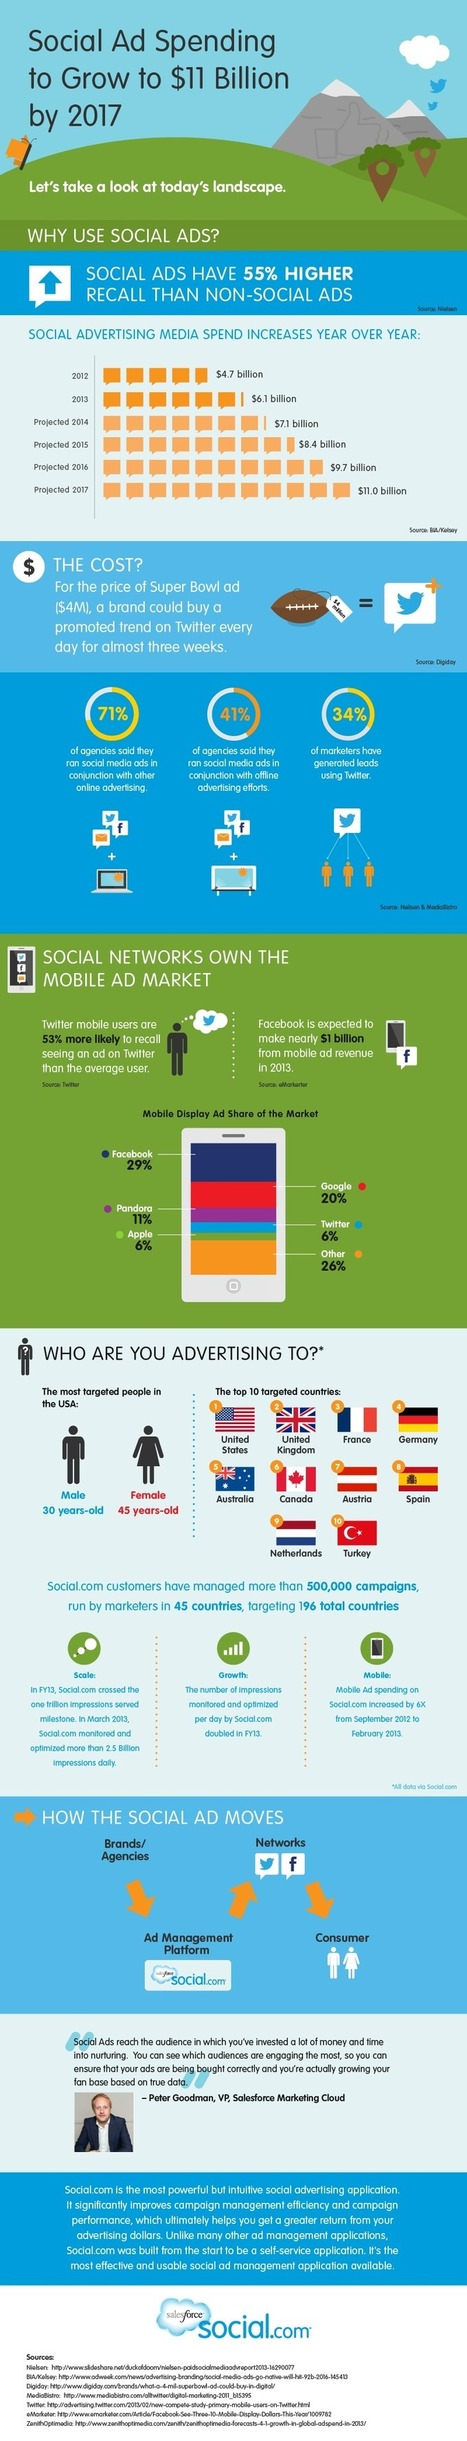 Guide to Social Media Advertising: Infographic | Aspiring Outliers | Scoop.it